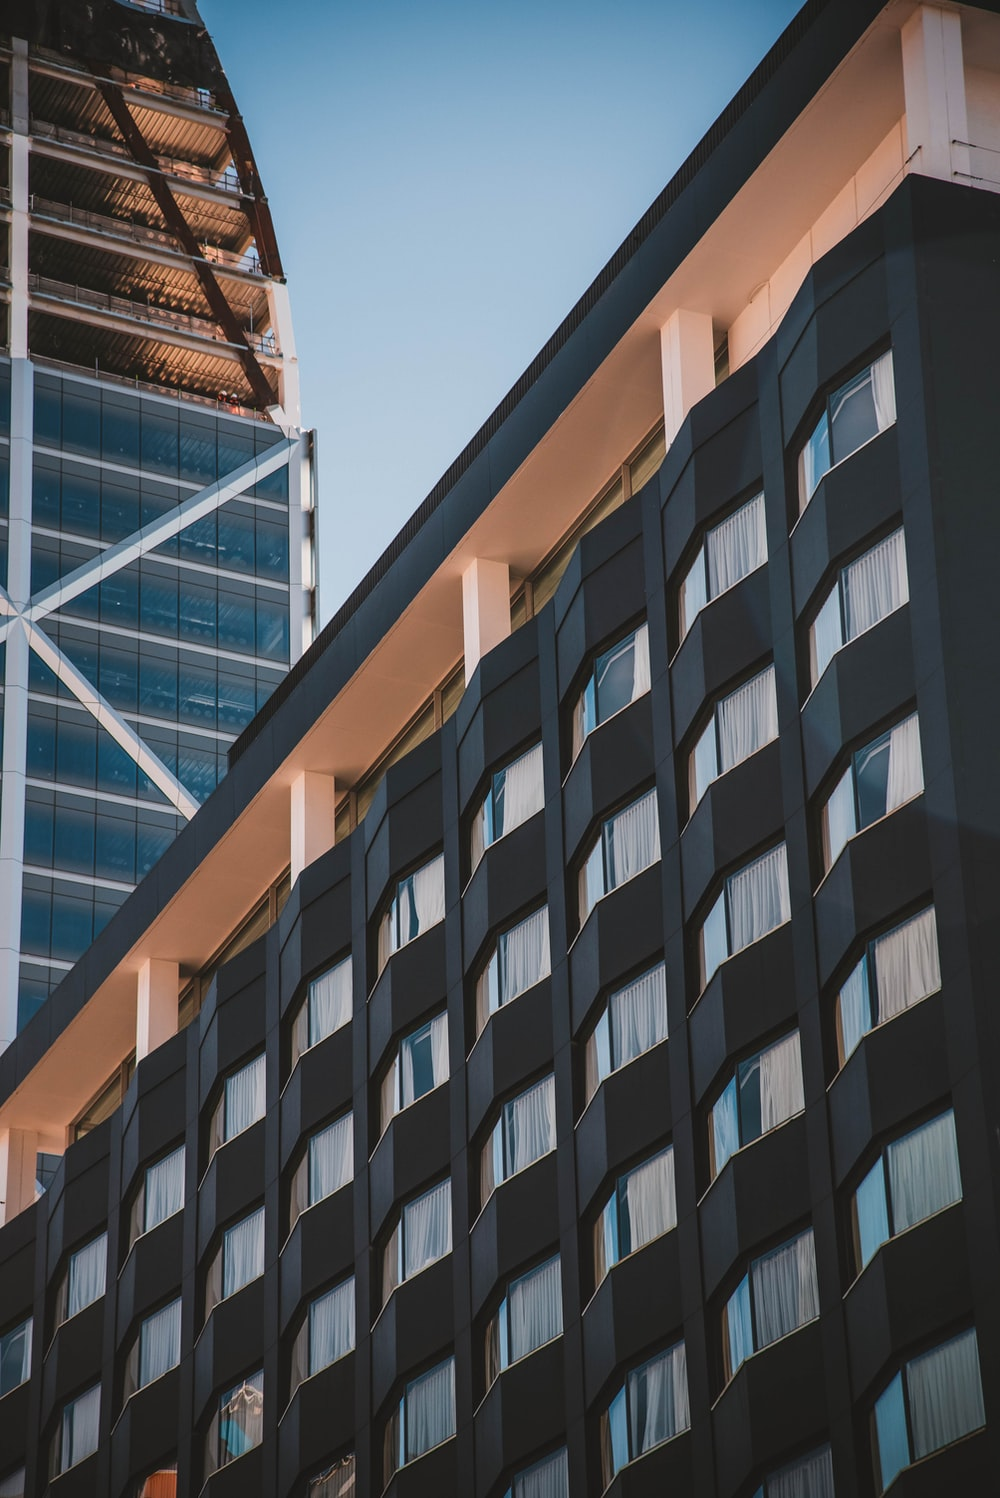 low-angle photography of black and brown high-rise building during daytime